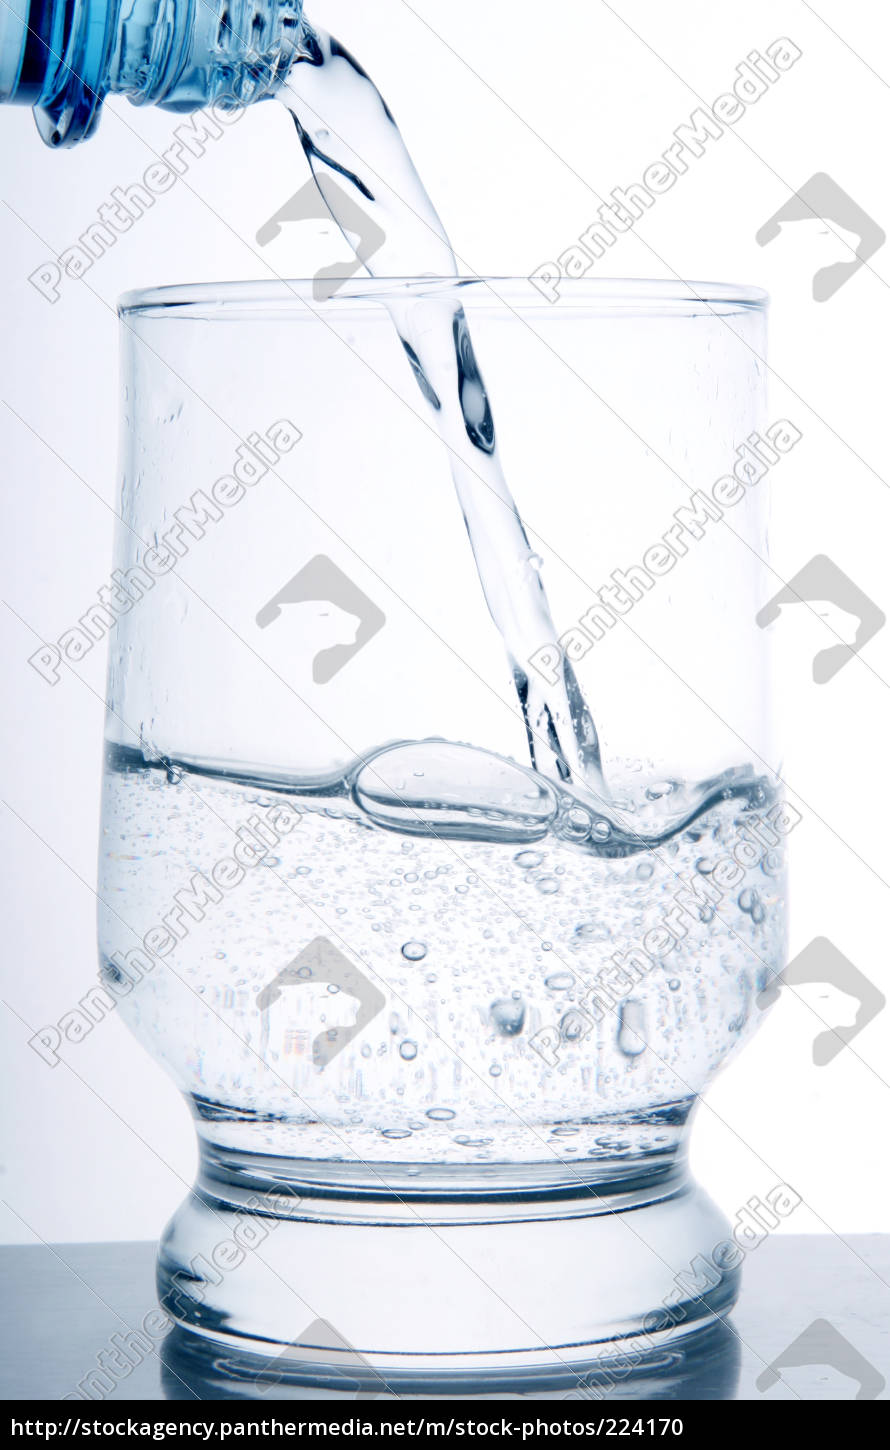 water - 224170